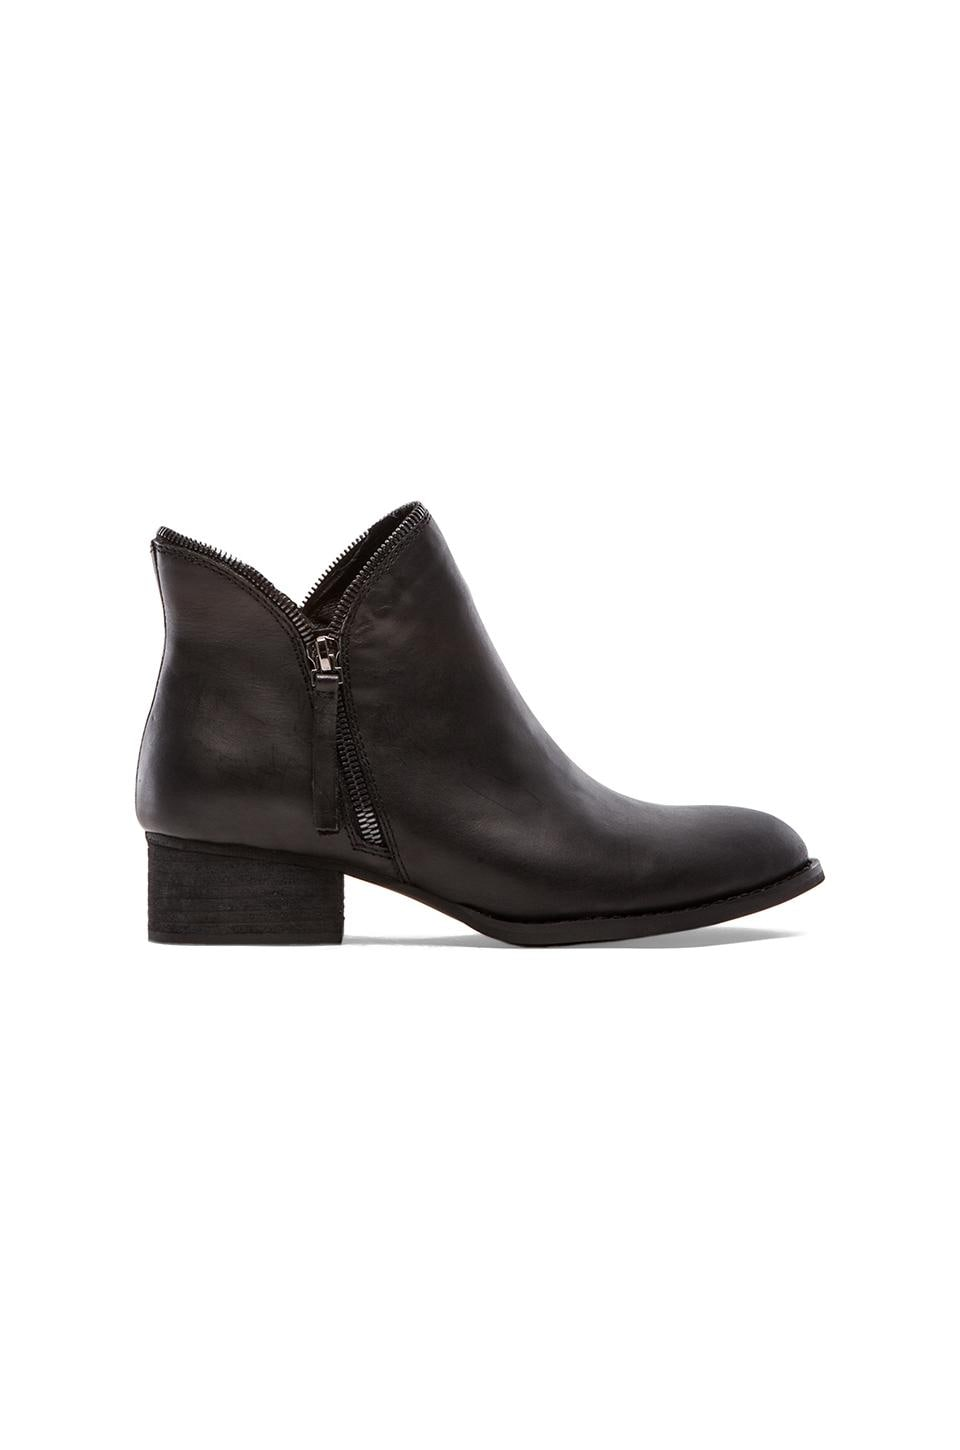 Jeffrey Campbell Crockett Bootie in Black Distressed